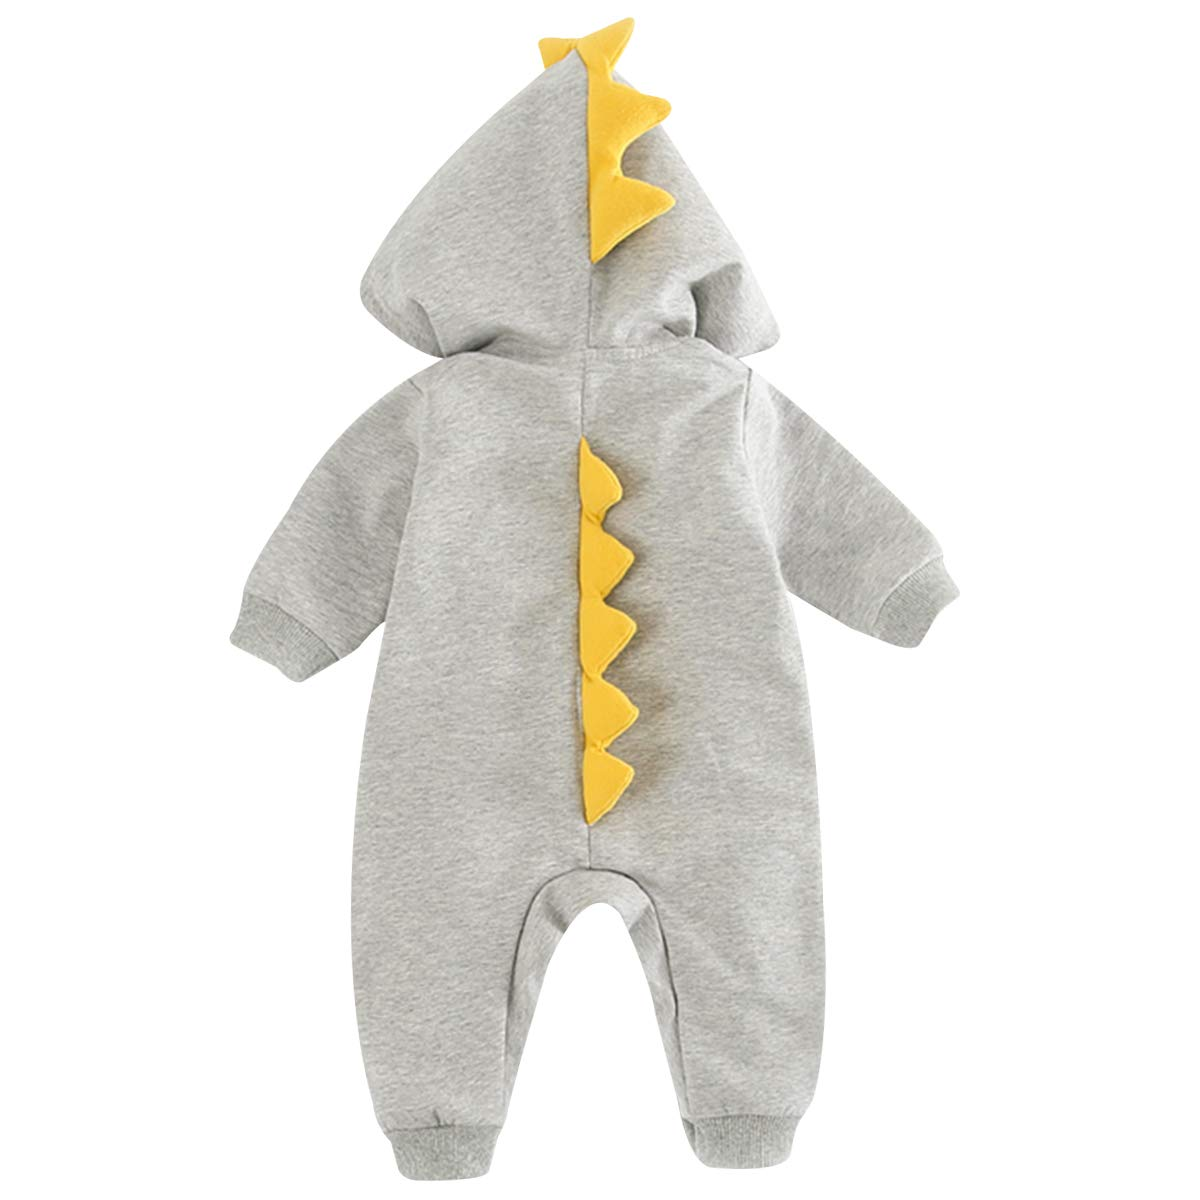 famuka Newborn Baby Hooded Romper Infant Onesies Jumpsuit Cute Cartoon Outfits